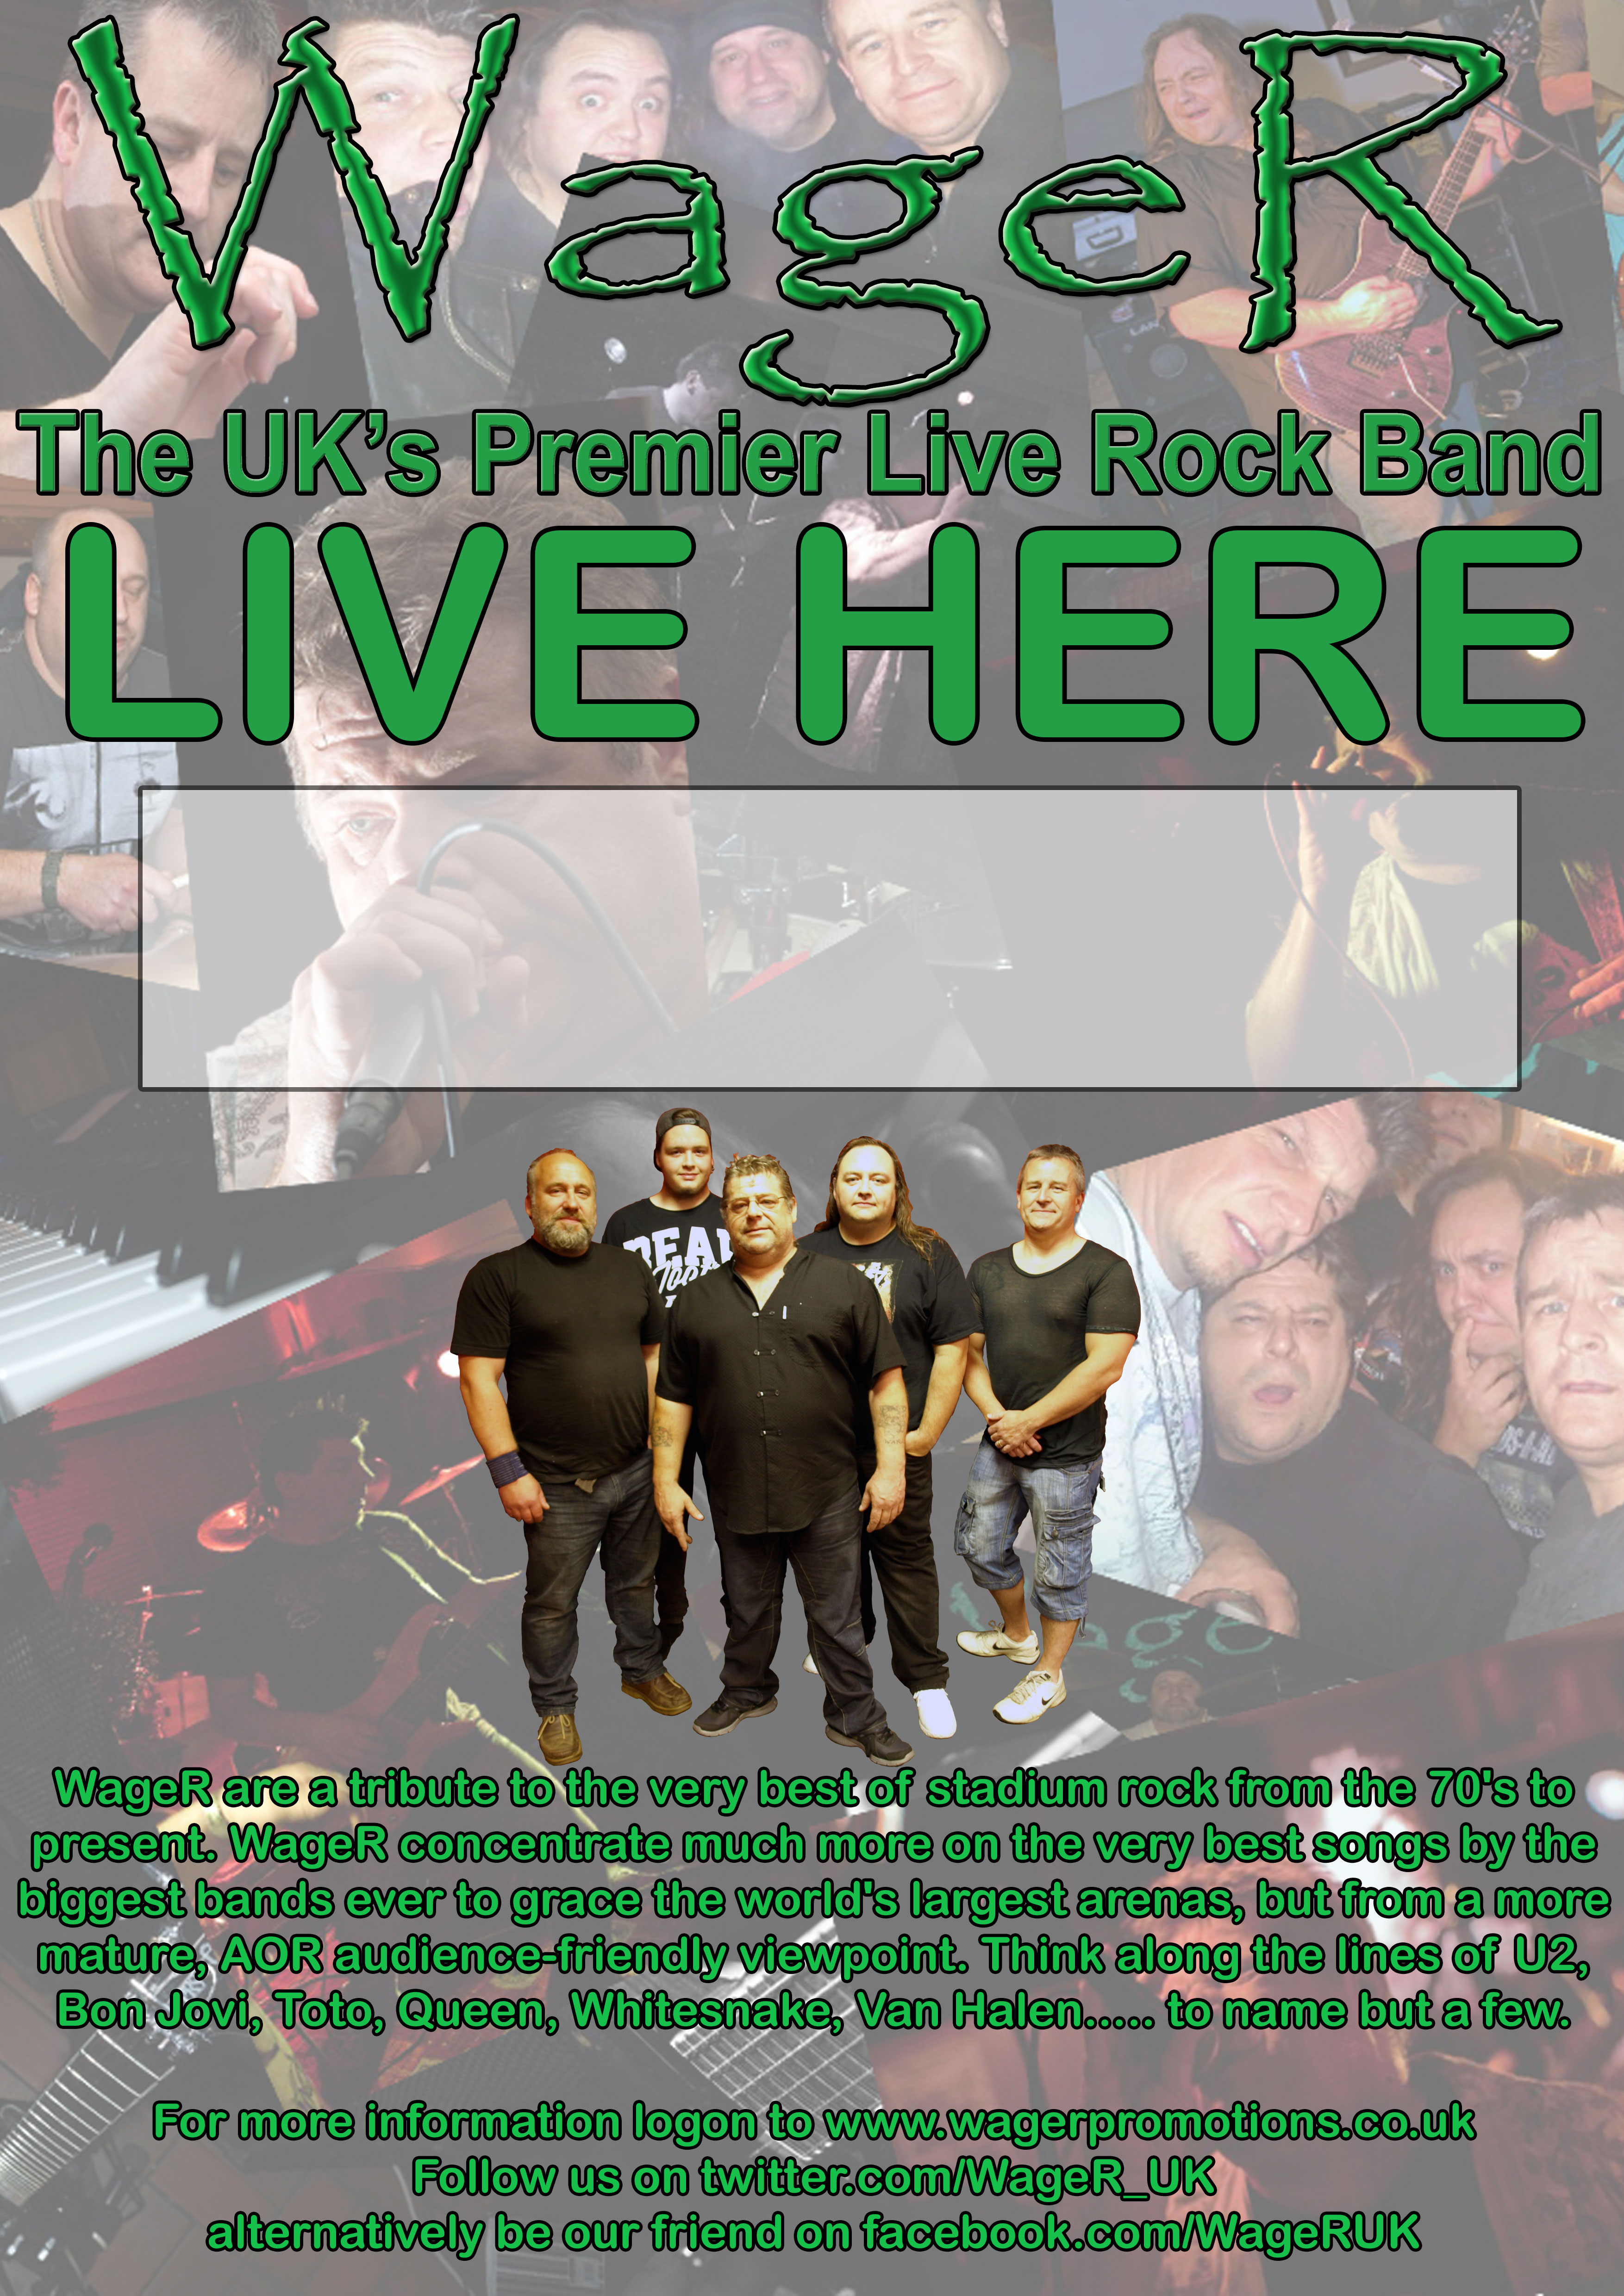 WageR - The UK's Premier Live Rock Band